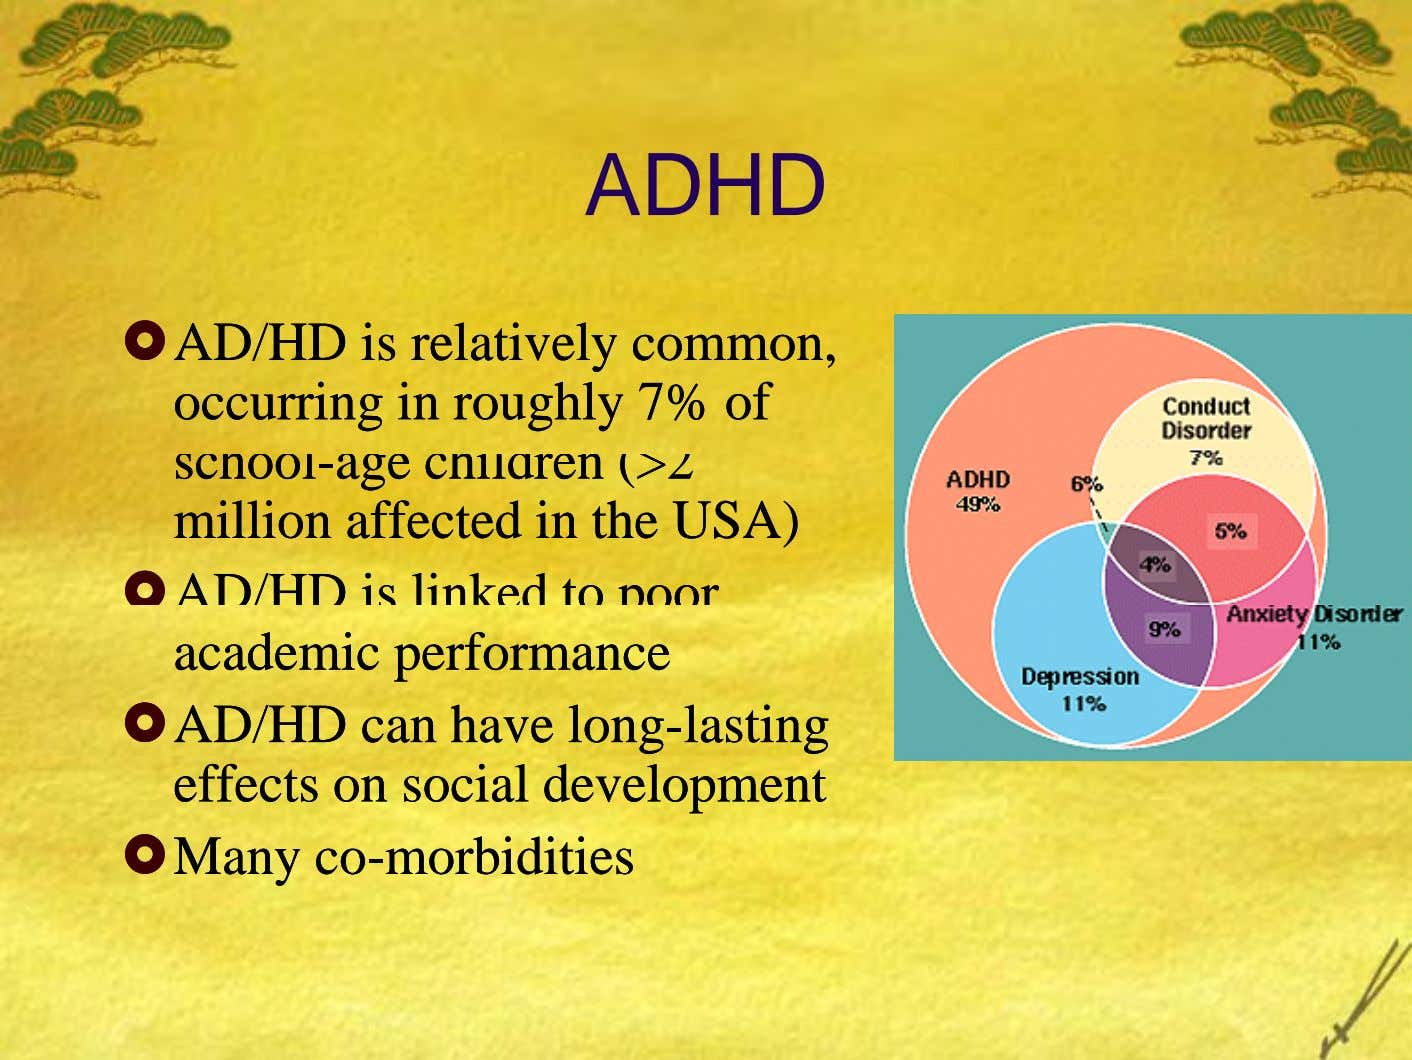 ADHD AD/HD AD/HD isis relatively common, relatively common, occurring occurring inin roughly roughly 7%7% of of